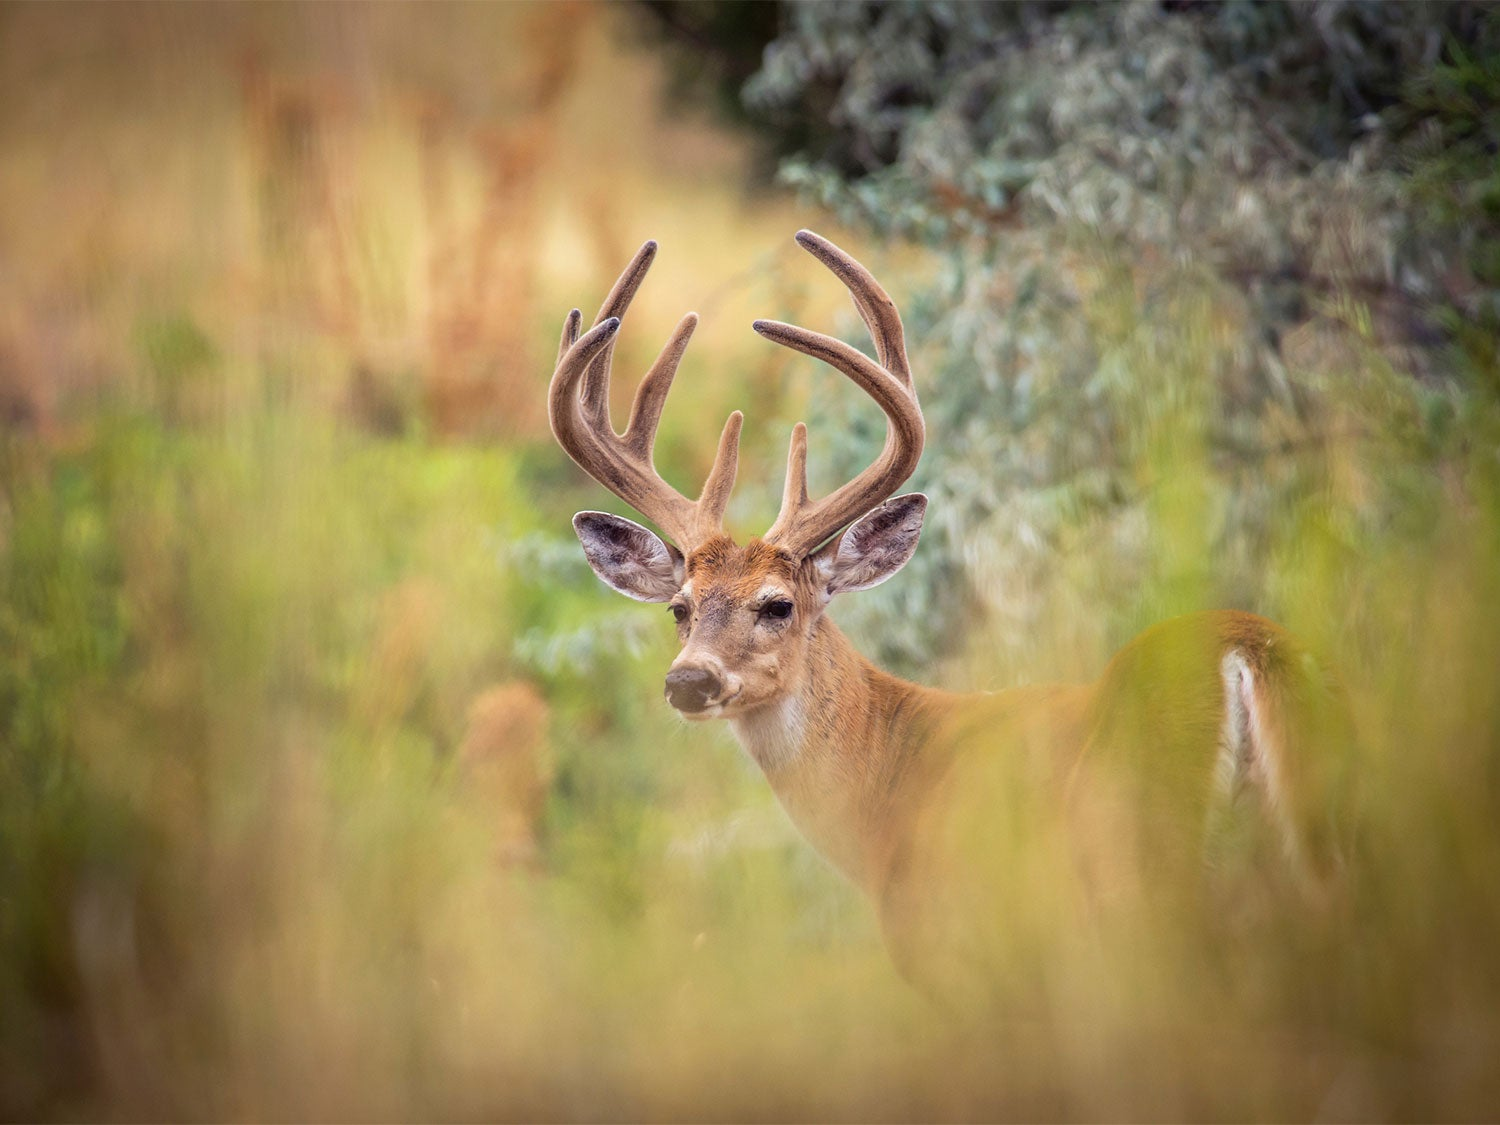 A whitetail buck standing in tall grass.